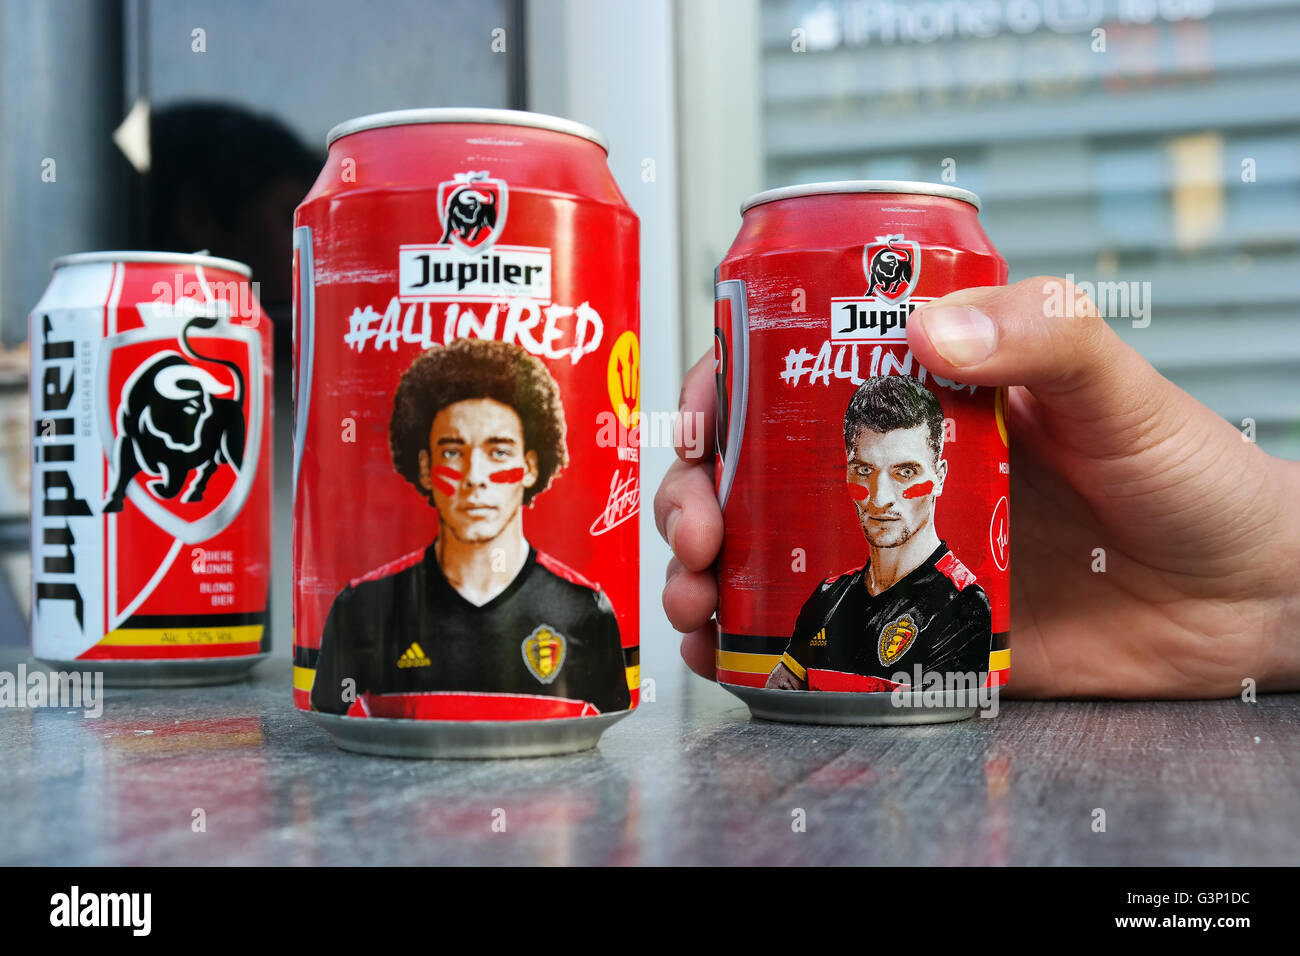 Beer cans with pictures of Belgian Football players - Stock Image